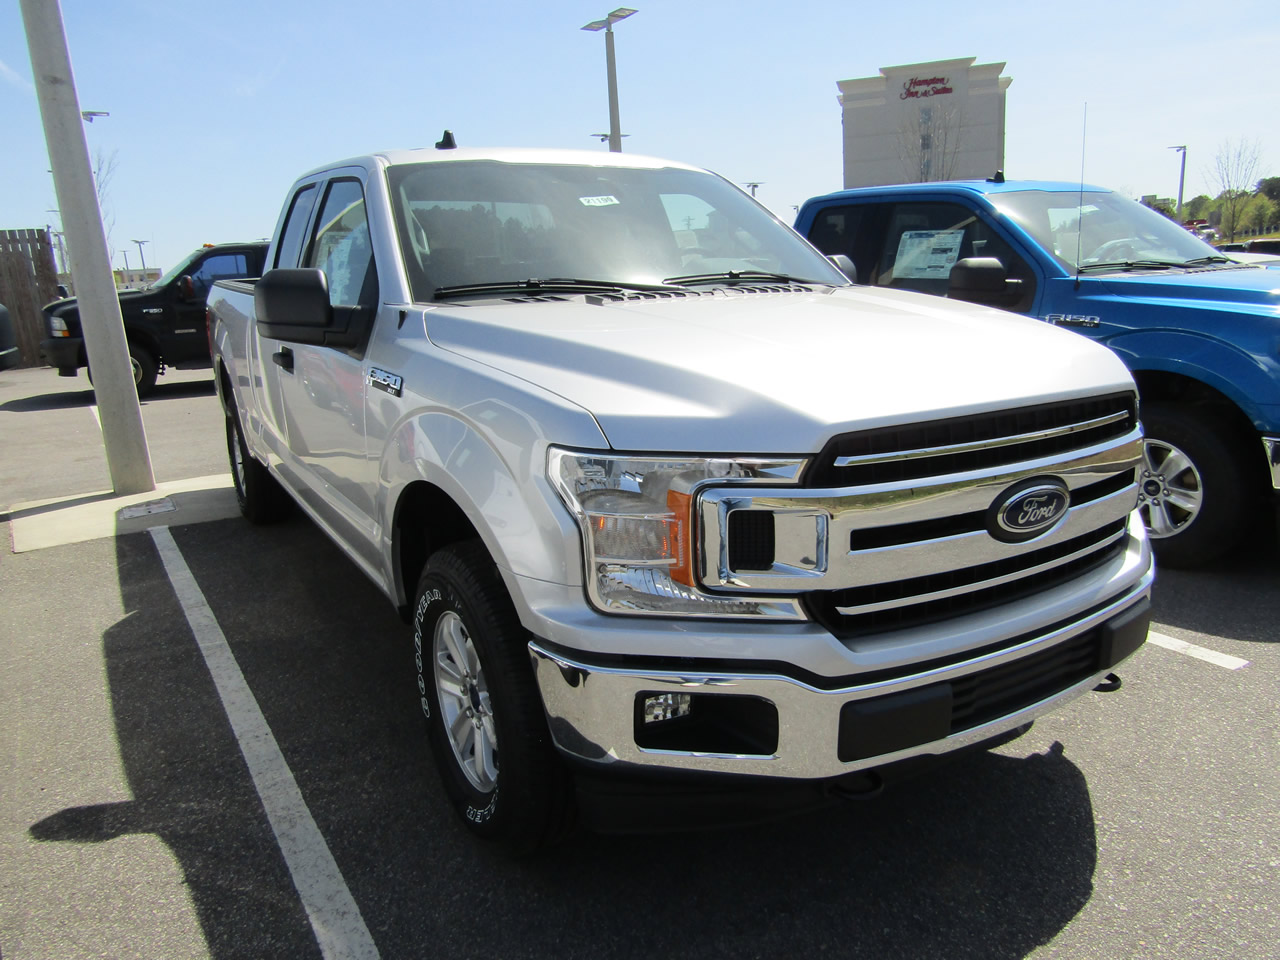 2019 Ford F-150 XLT SuperCab 4WD Dick Smith Ford serving Columbia, Sumter, Orangeburg, West Columbia, Lexington, Newberry, Lugoff SC, Selling new Ford cars and trucks and used vehciles in Columbia, SC